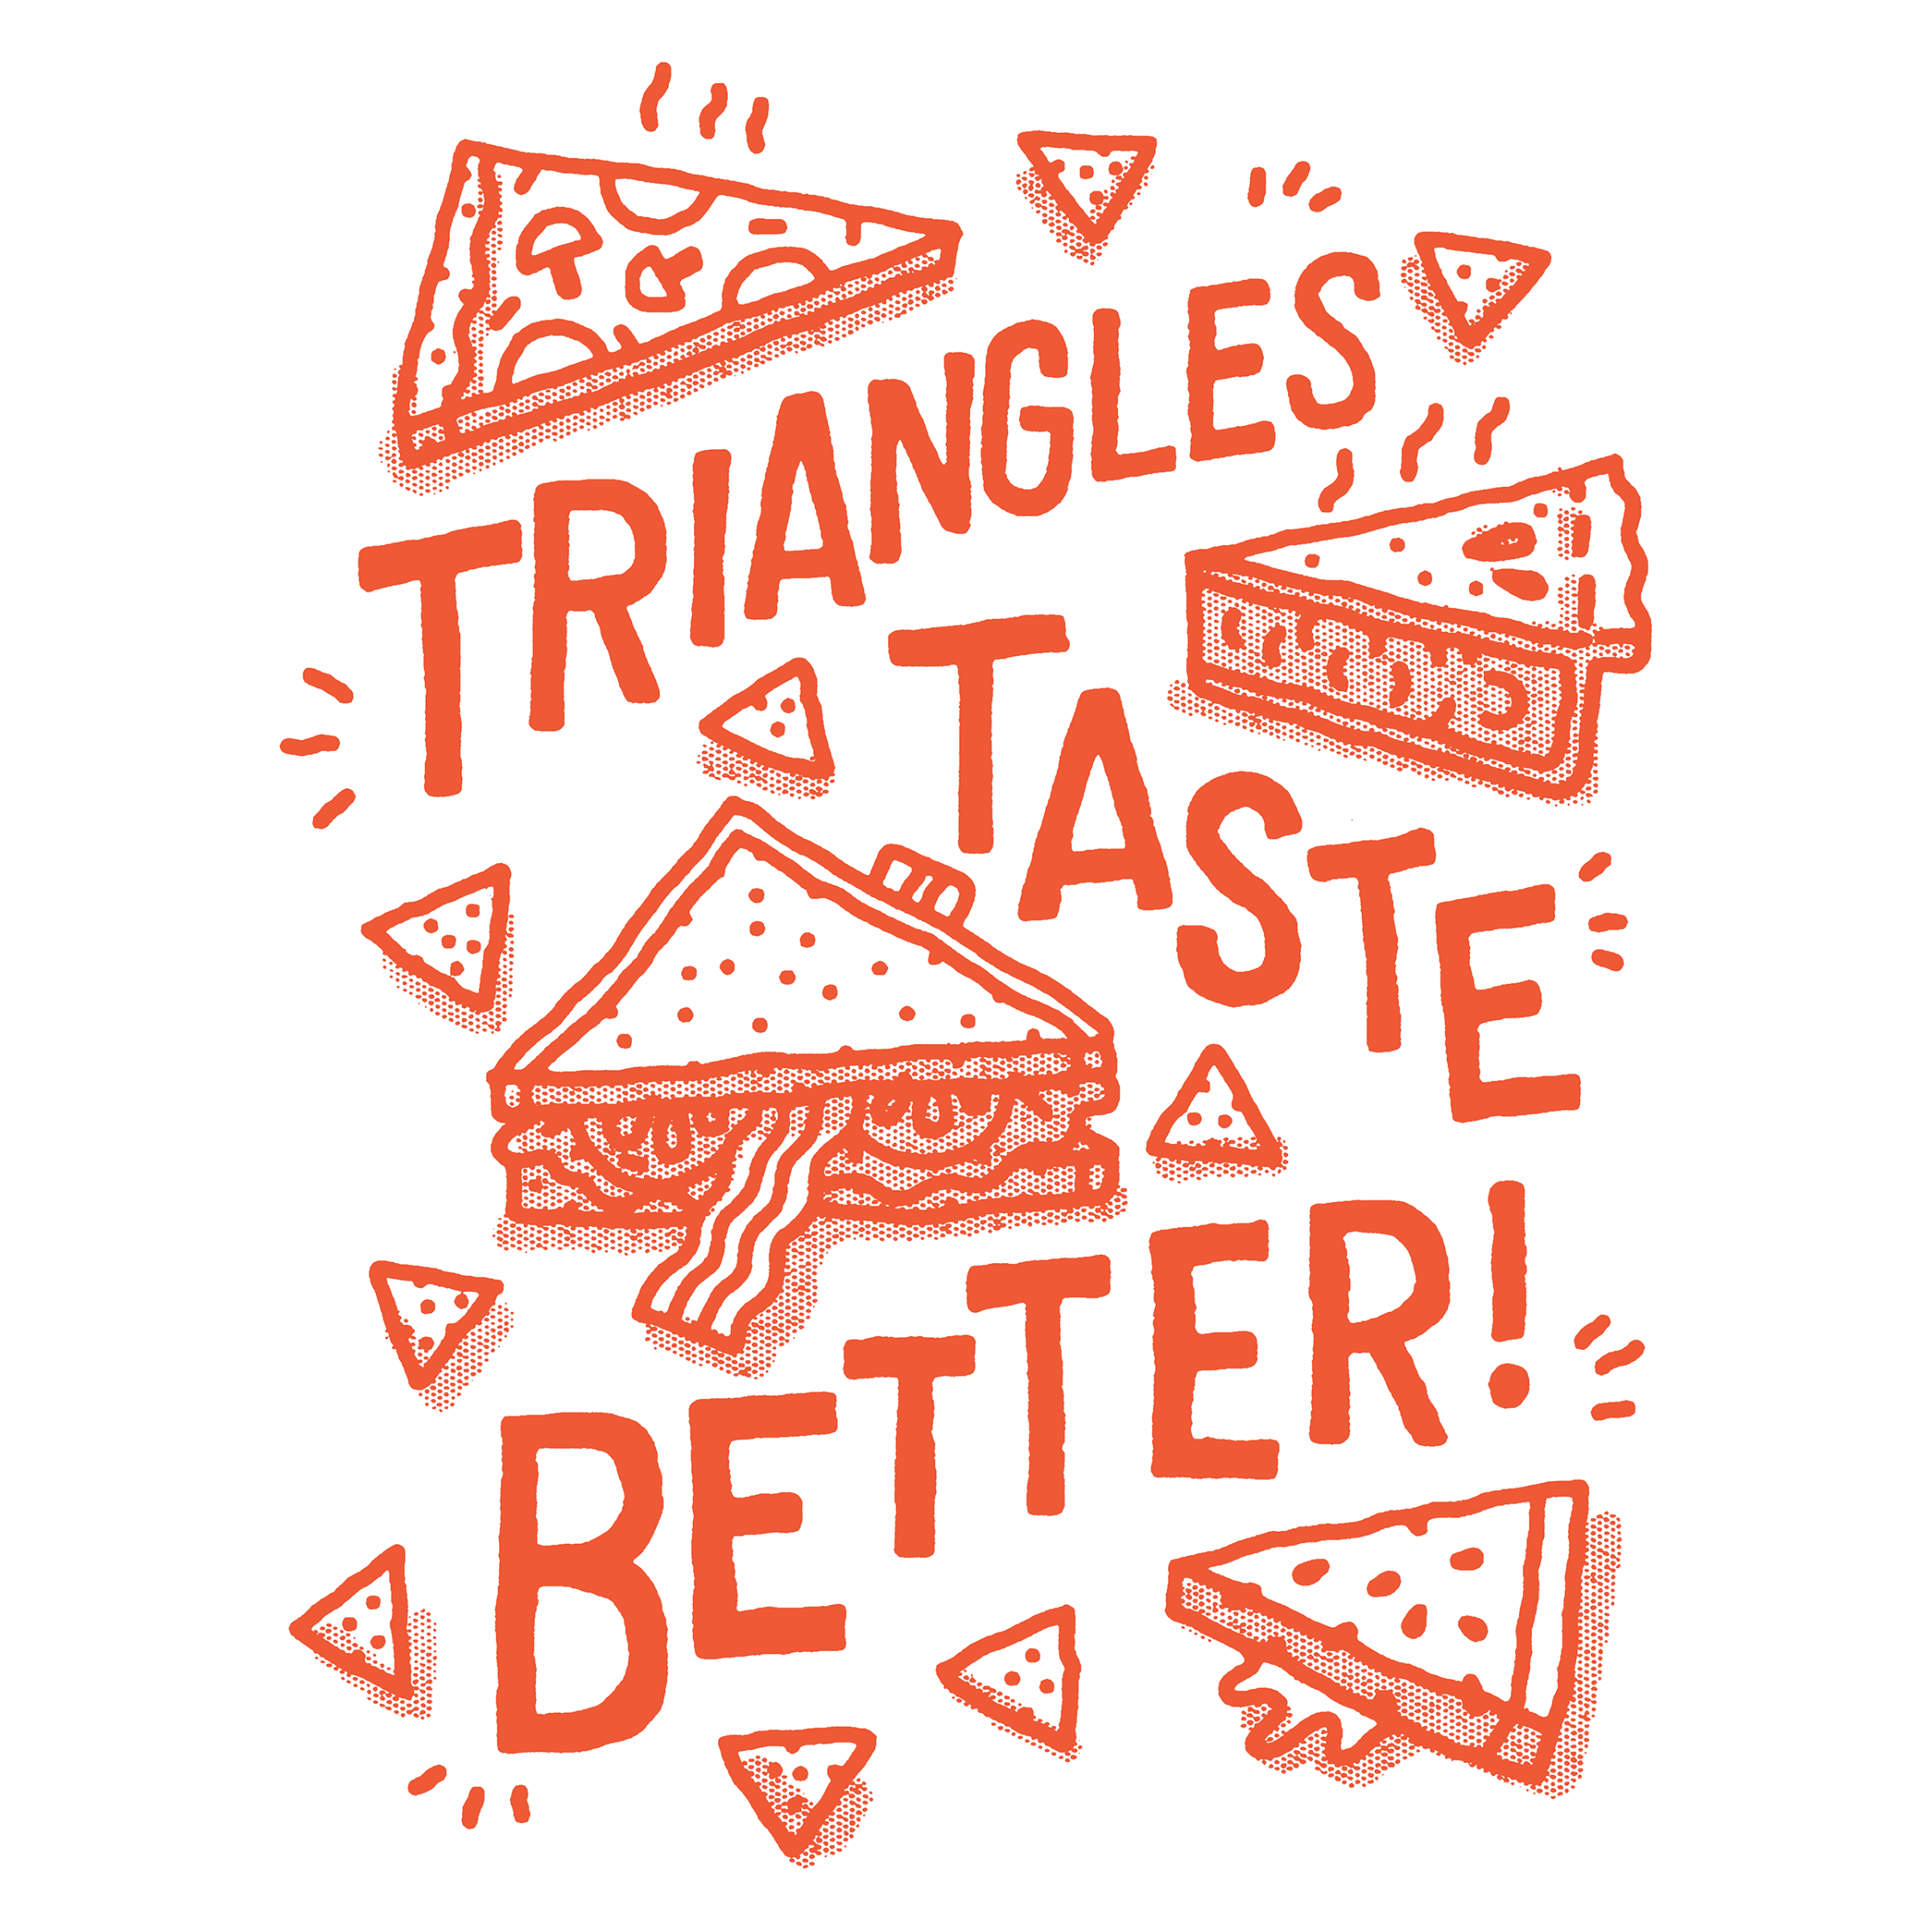 Triangles Taste Better, benefiting La Cocina SF Detail